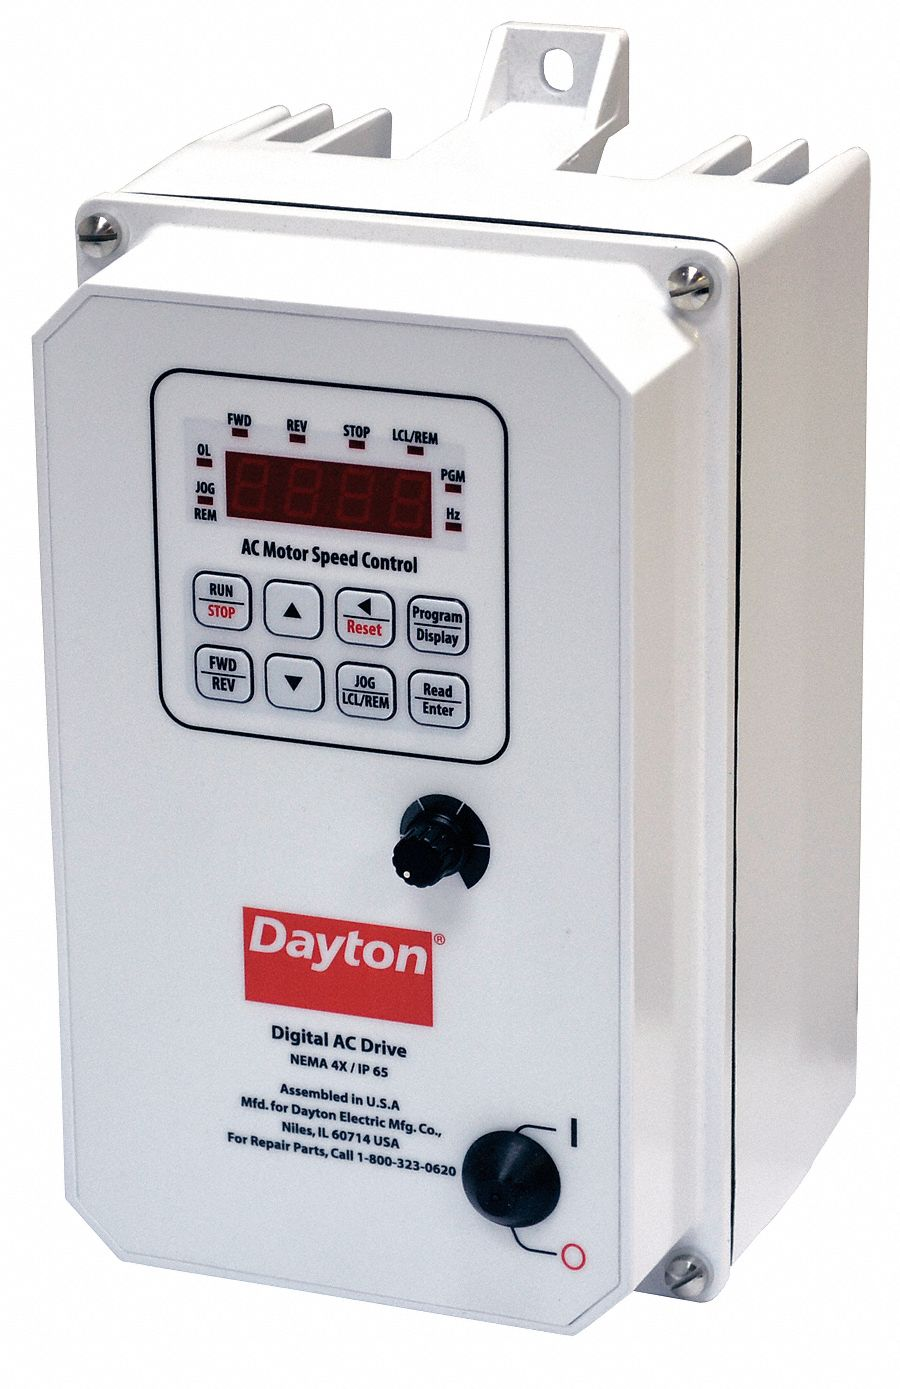 Dayton variable frequency drive 1 hp 208 240v 13e651 for Small variable speed ac electric motors